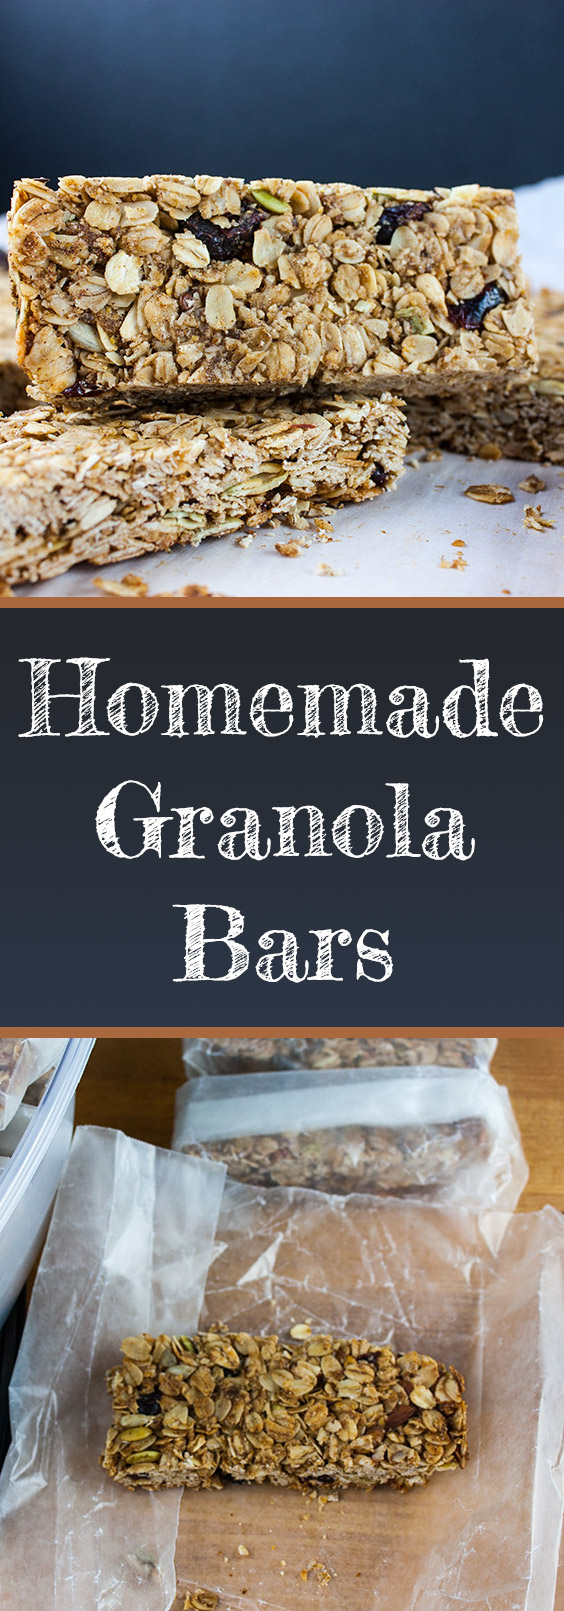 Homemade Granola Bars - Easy, healthy and the perfect combination of crunchy and chewy. No refrigeration needed!